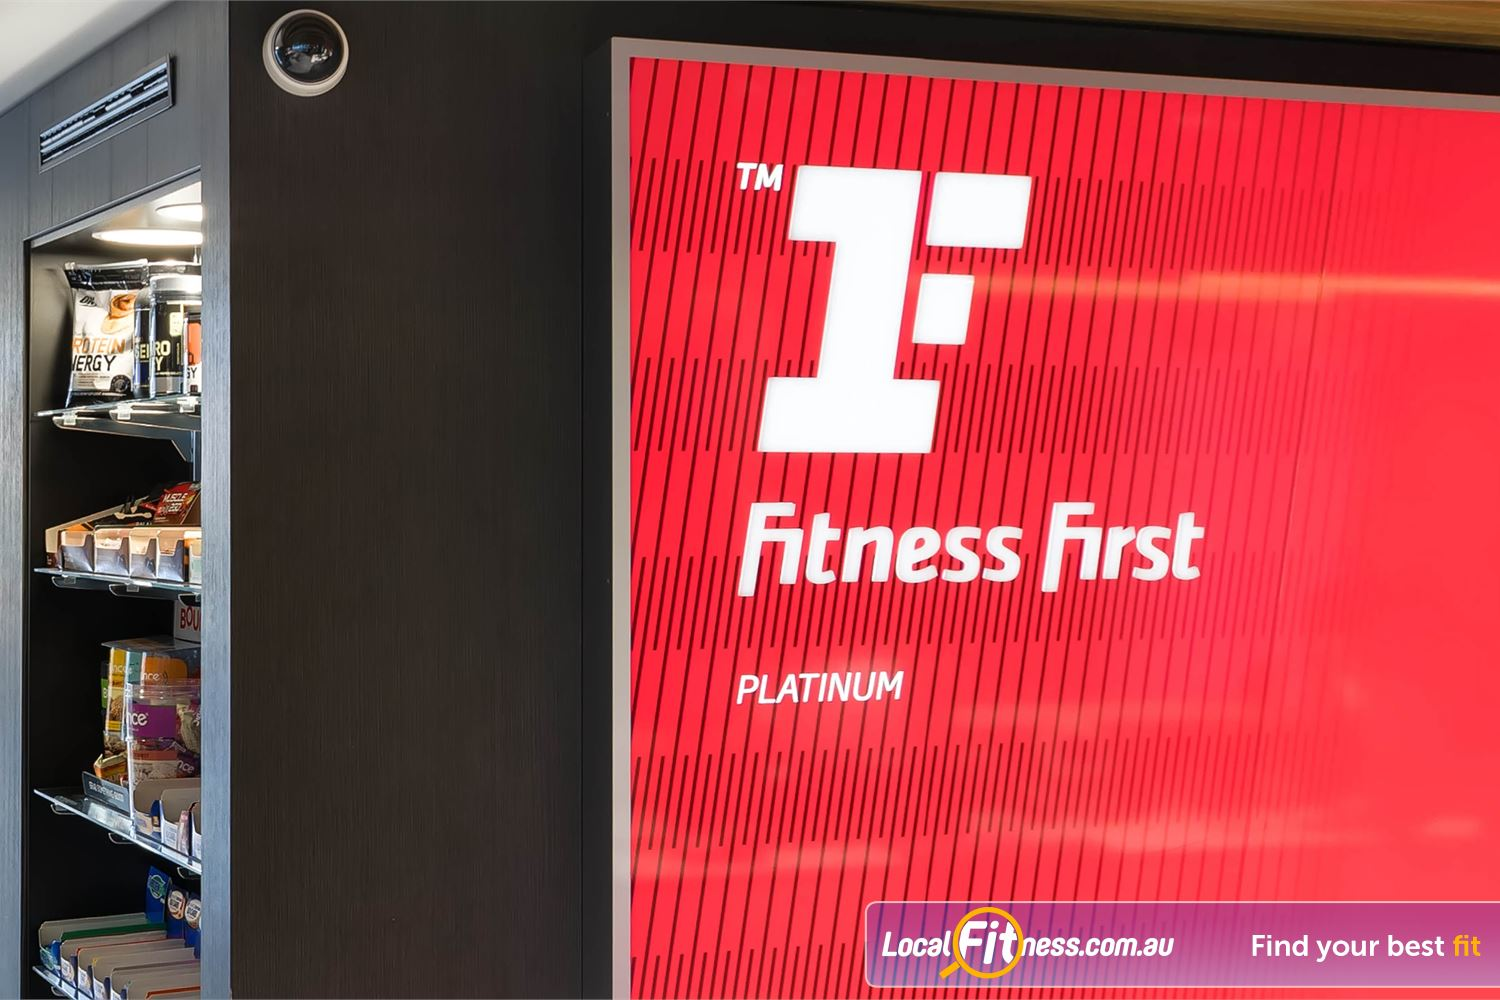 Fitness First Platinum Market St. Sydney Market St is one of 6 Fitness First Platinum clubs catering the Sydney CBD.